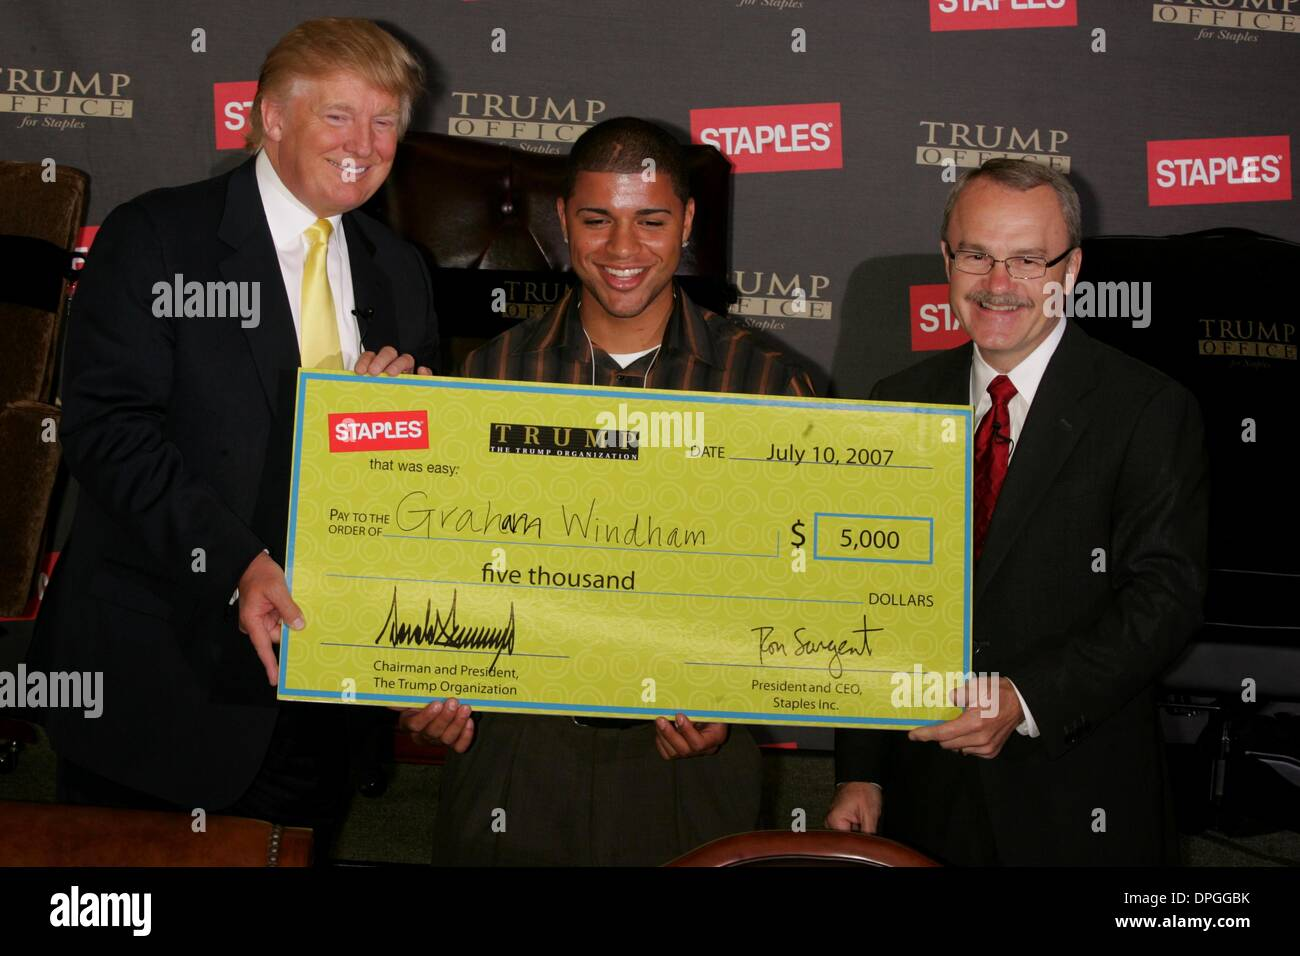 july 9 2006 new york new york us press conference at staples to introduce trump office furniturebroadway and 81st street new york new york broadway green office furniture